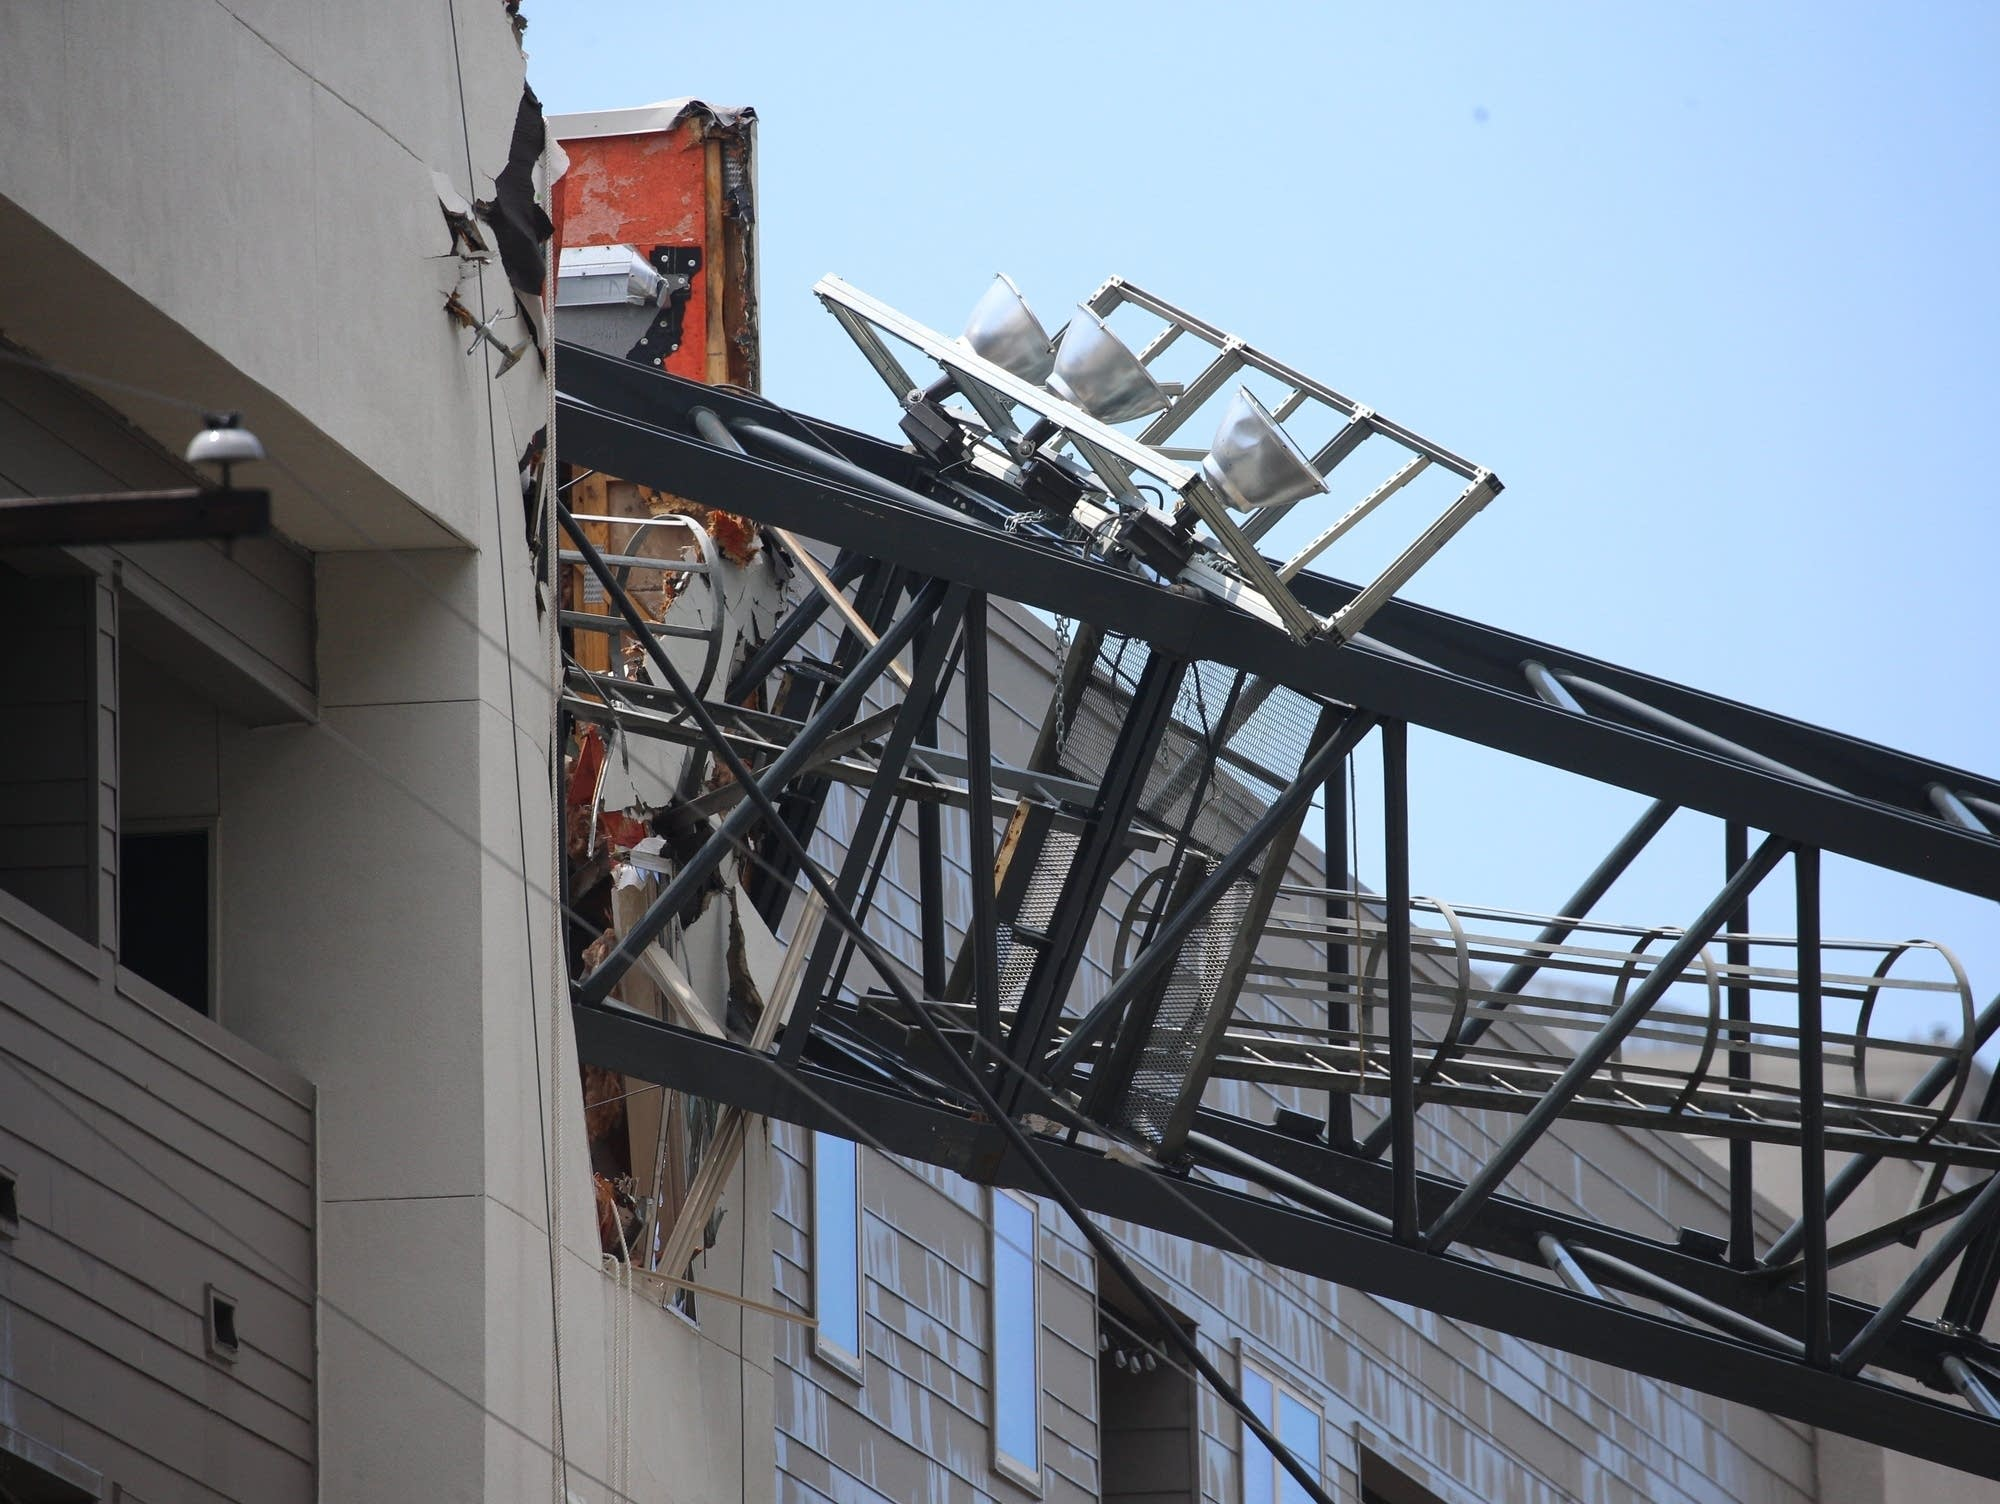 Part of a crane is seen after it collapsed in Dallas